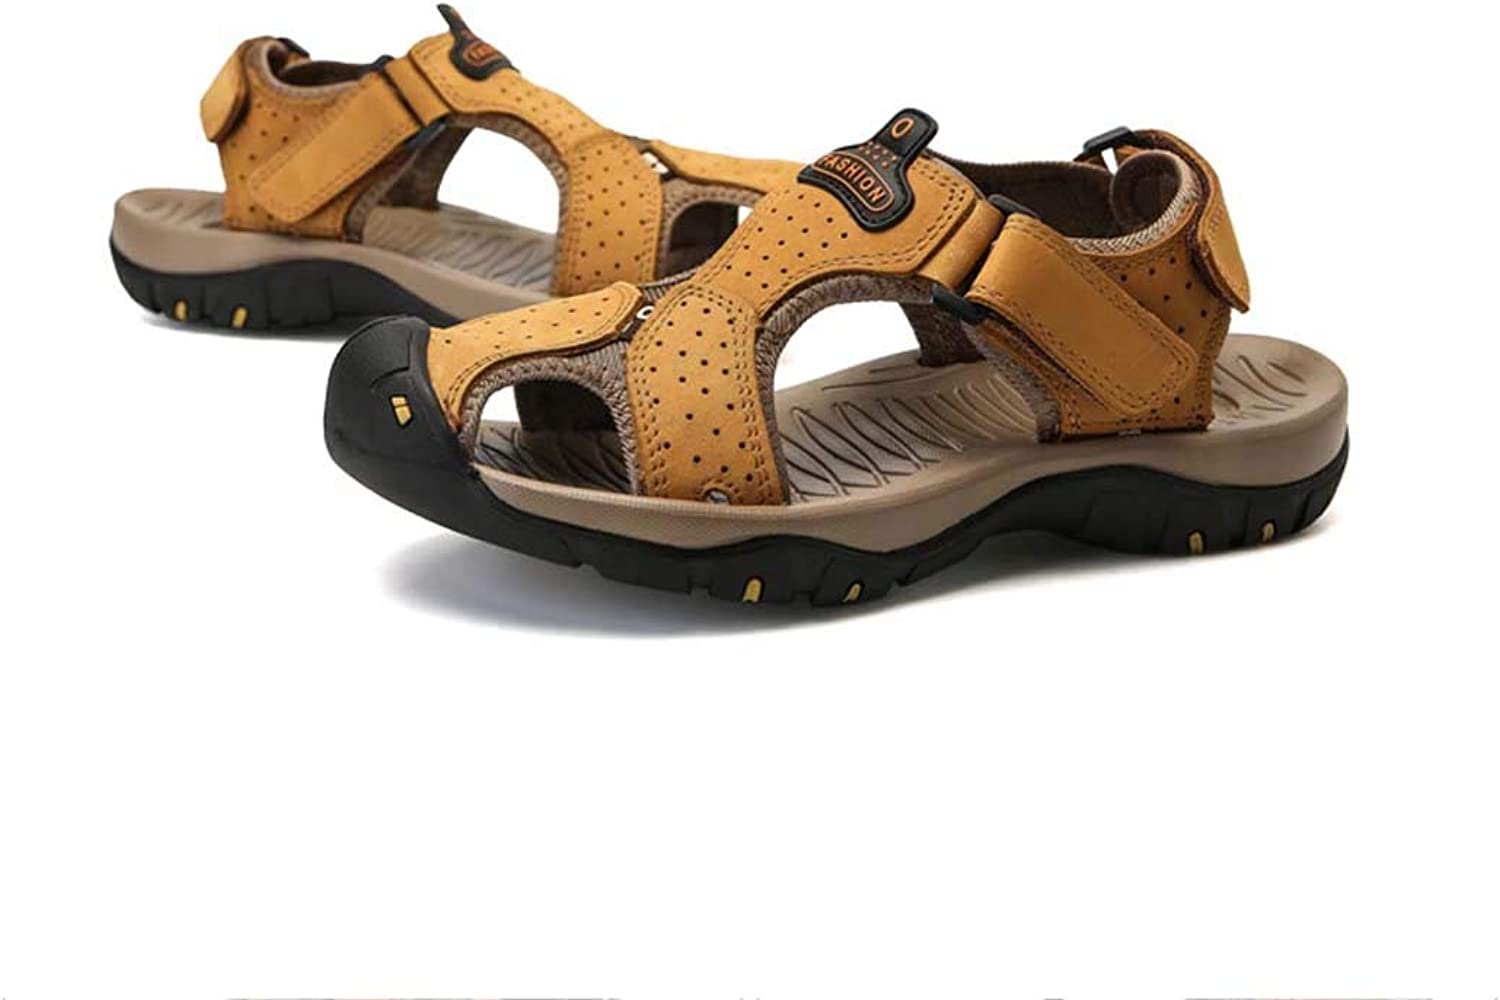 Summer Leather Sandals Man's Closed-Toe Beach Sandals Outdoor Hollow Out Casual shoes